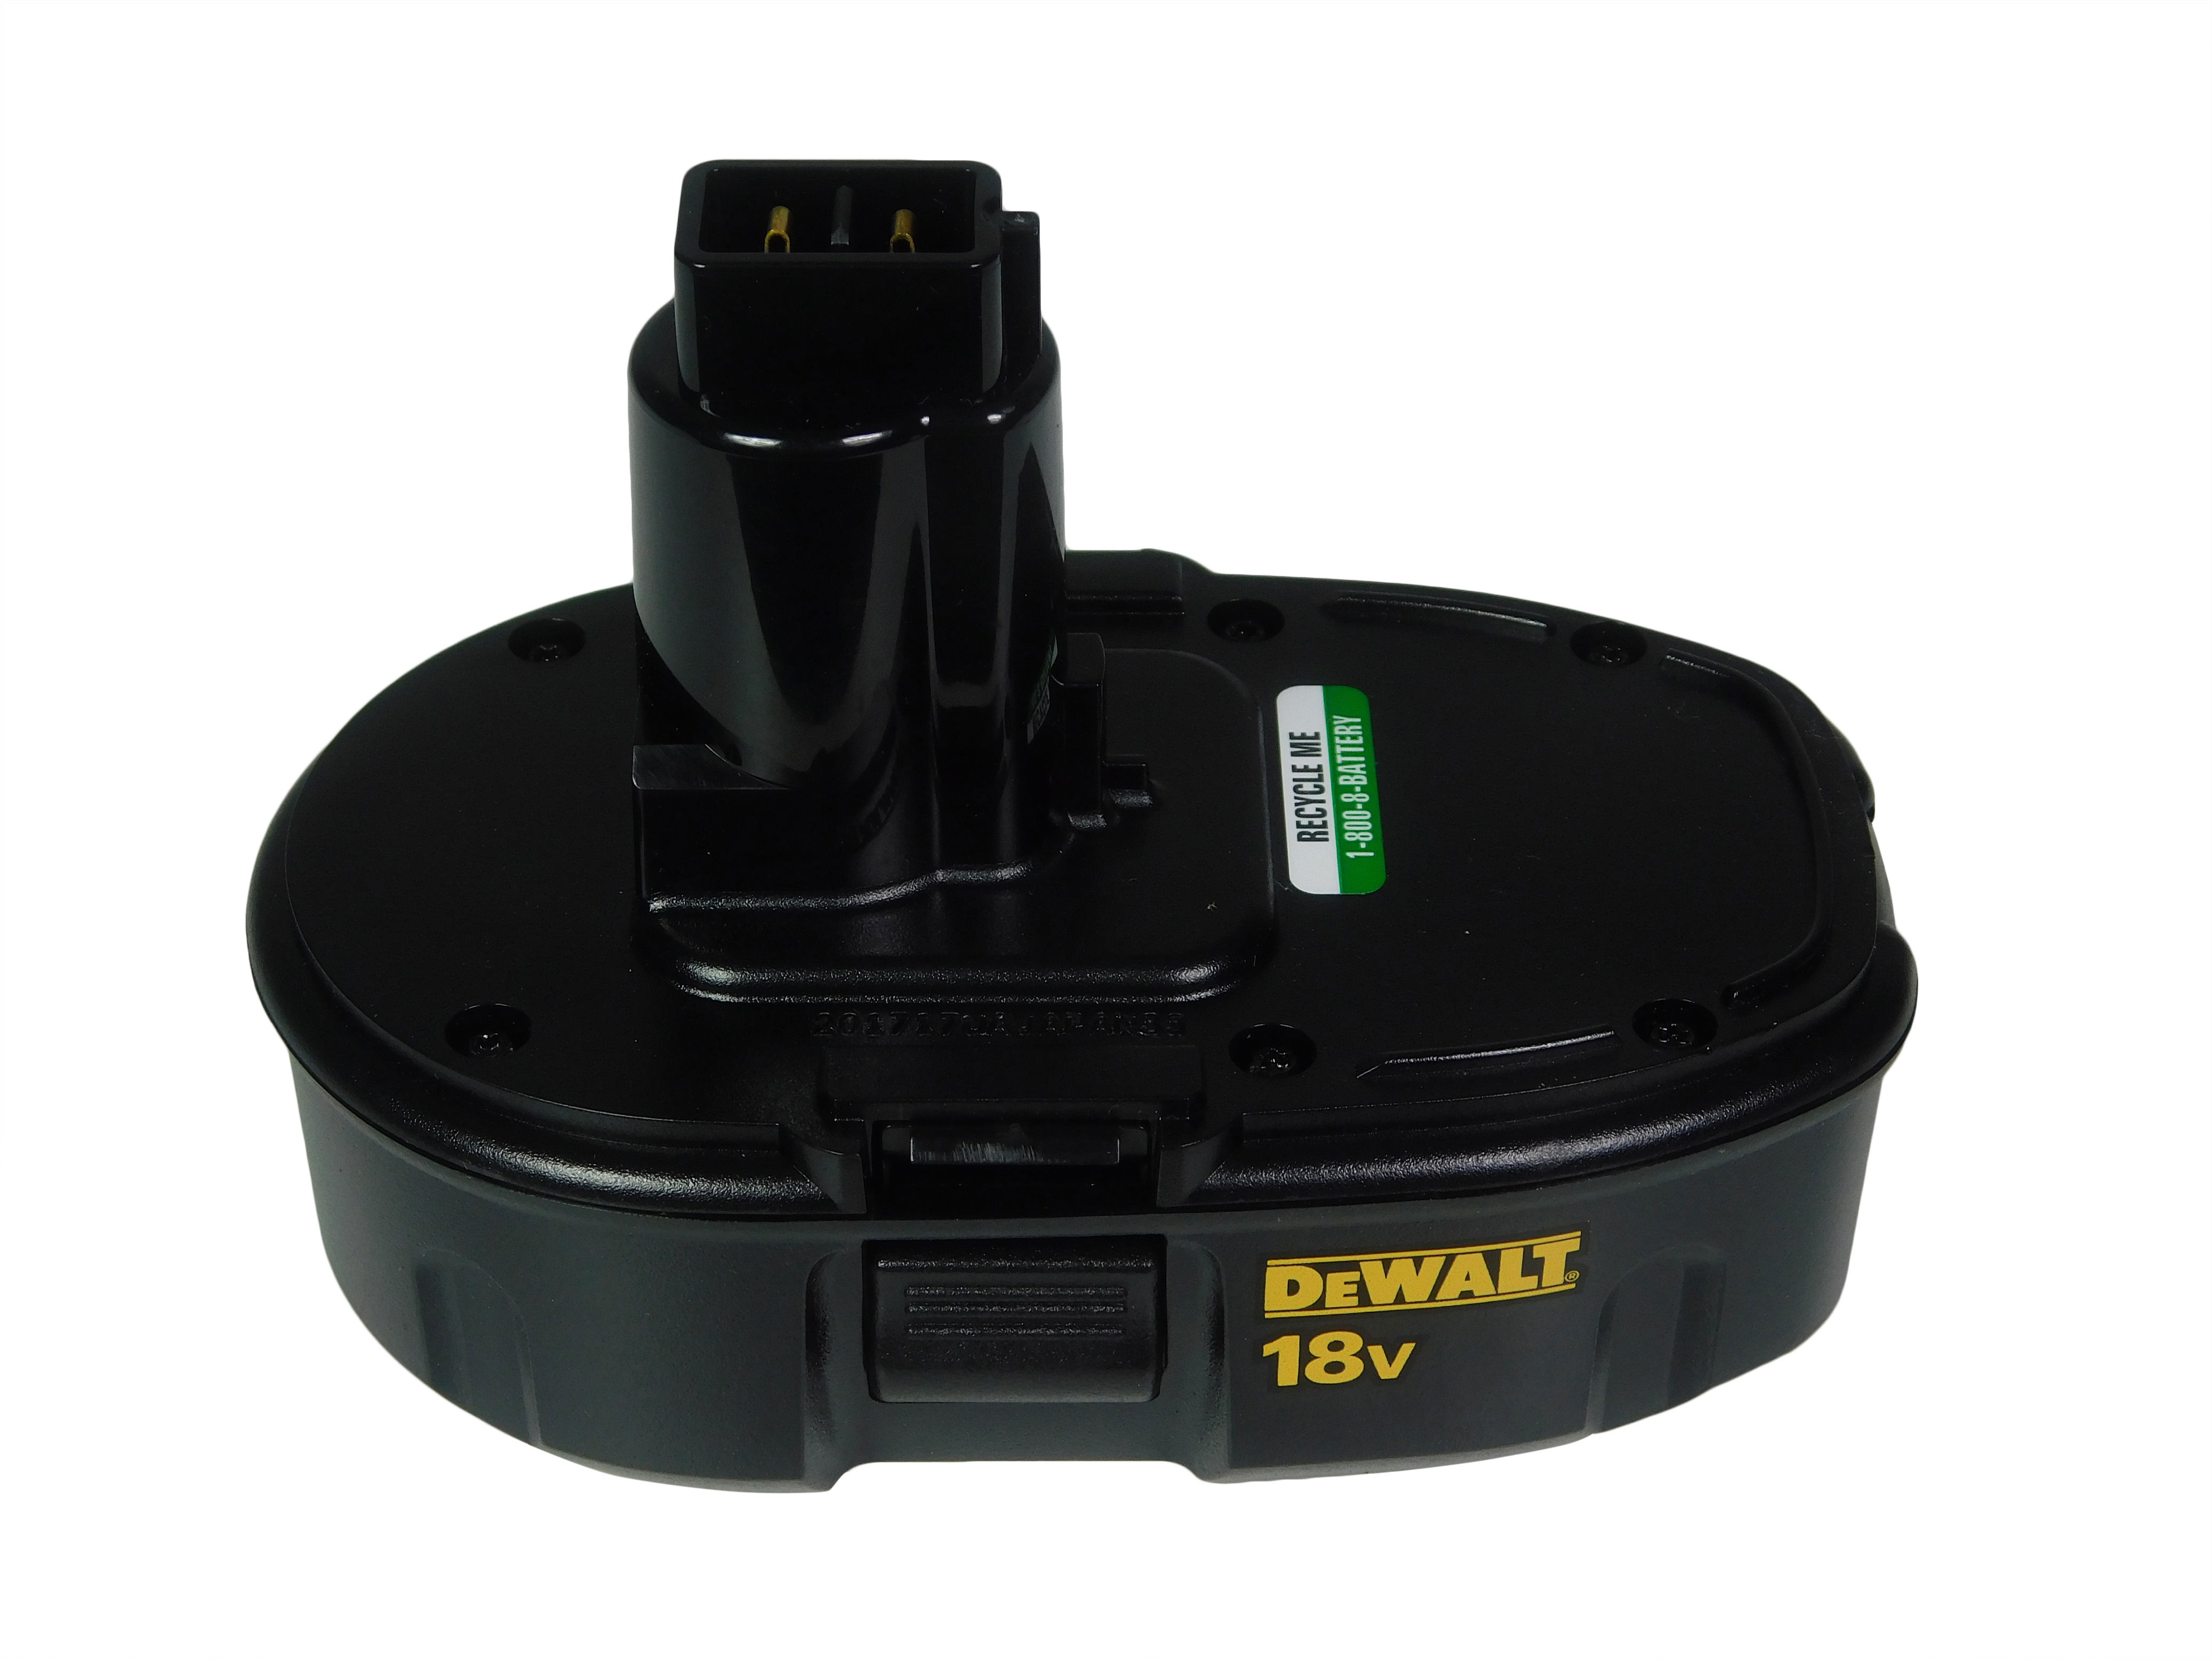 Dewalt-DC9098-18V-Ni-Cad-Battery-Single-Pack-image-11